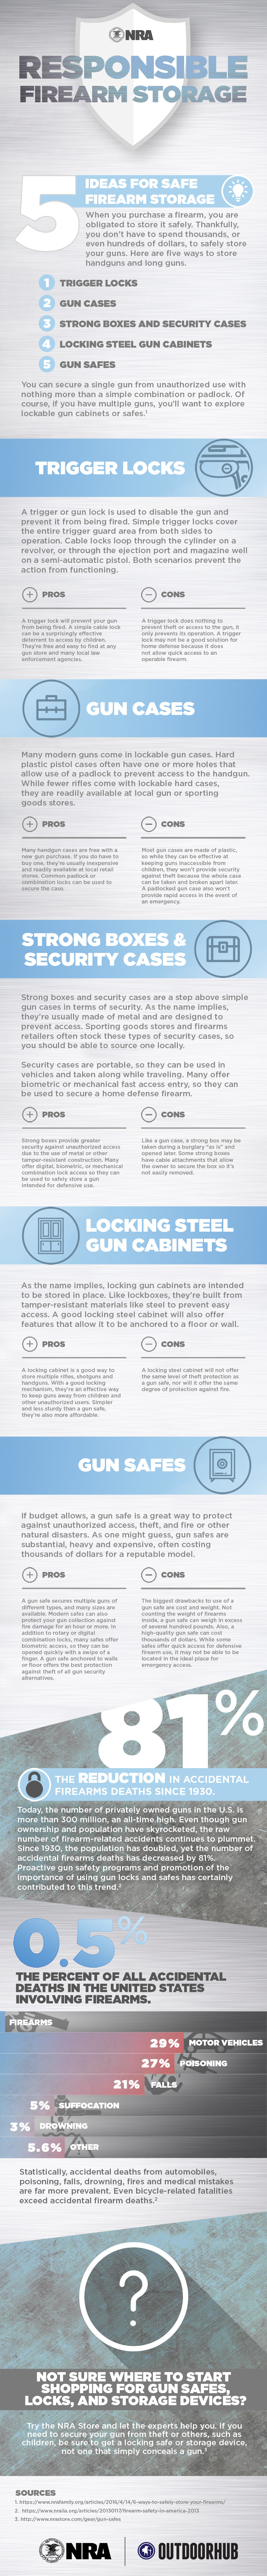 NRA Safe Firearm Storage Infographic.